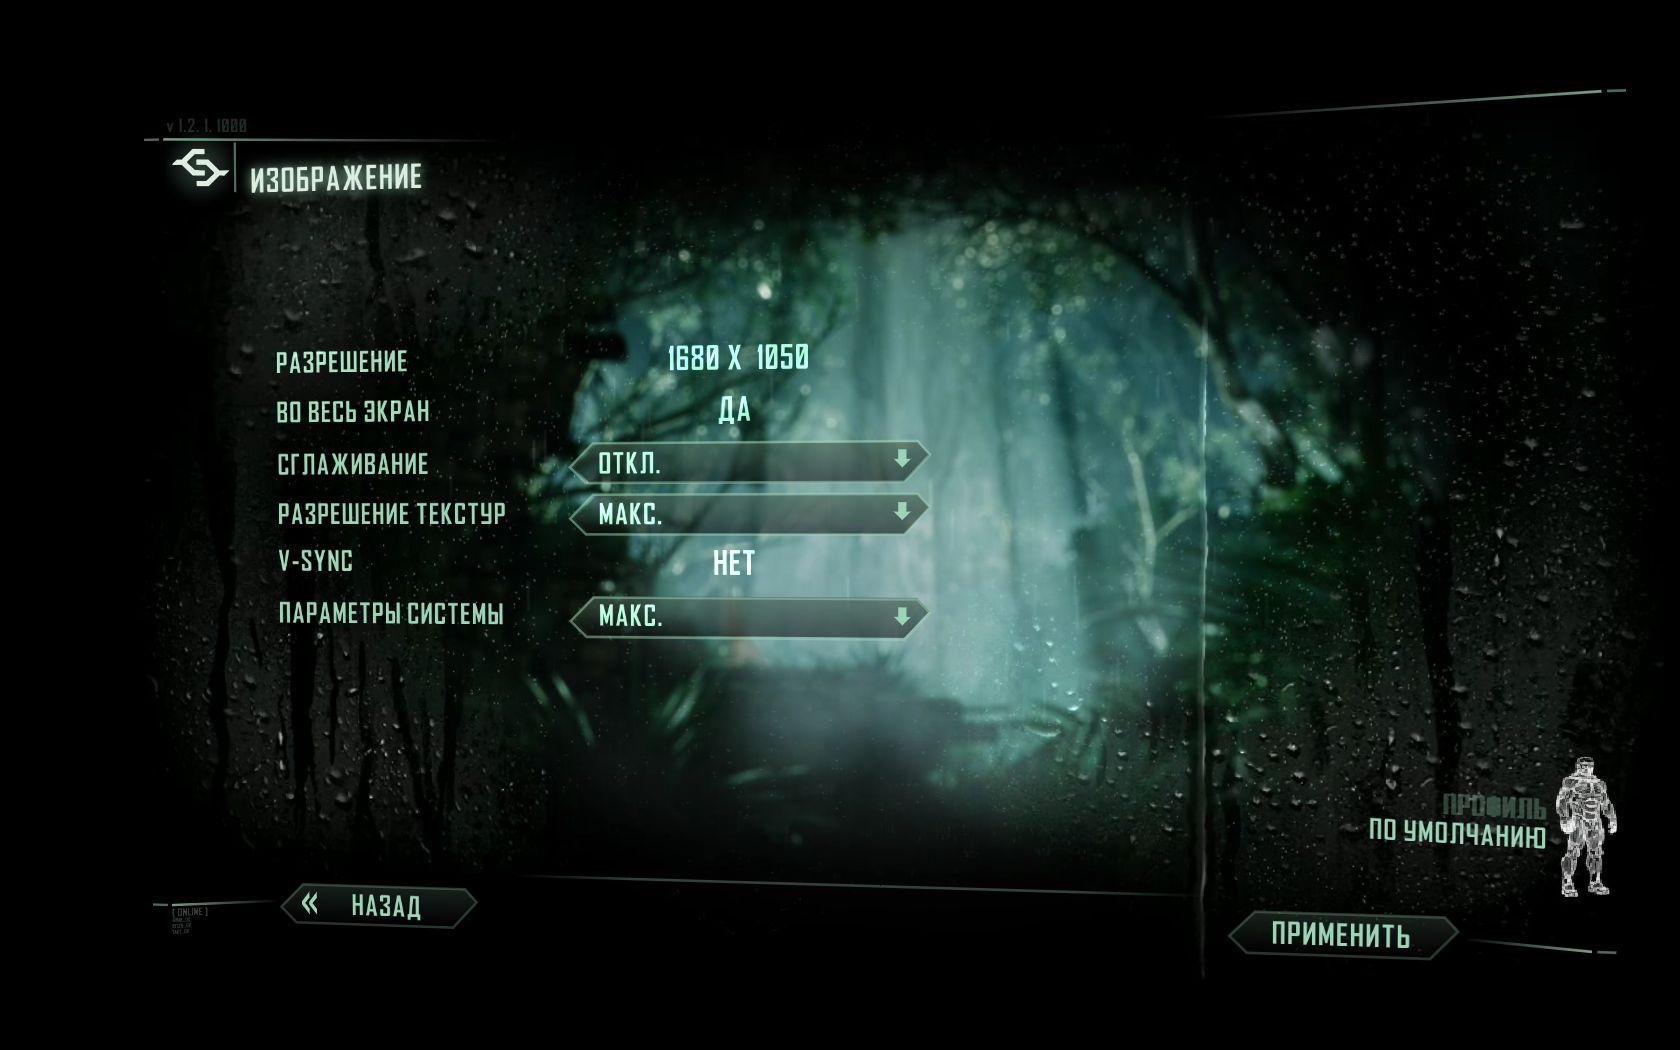 how to play crysis with amd card